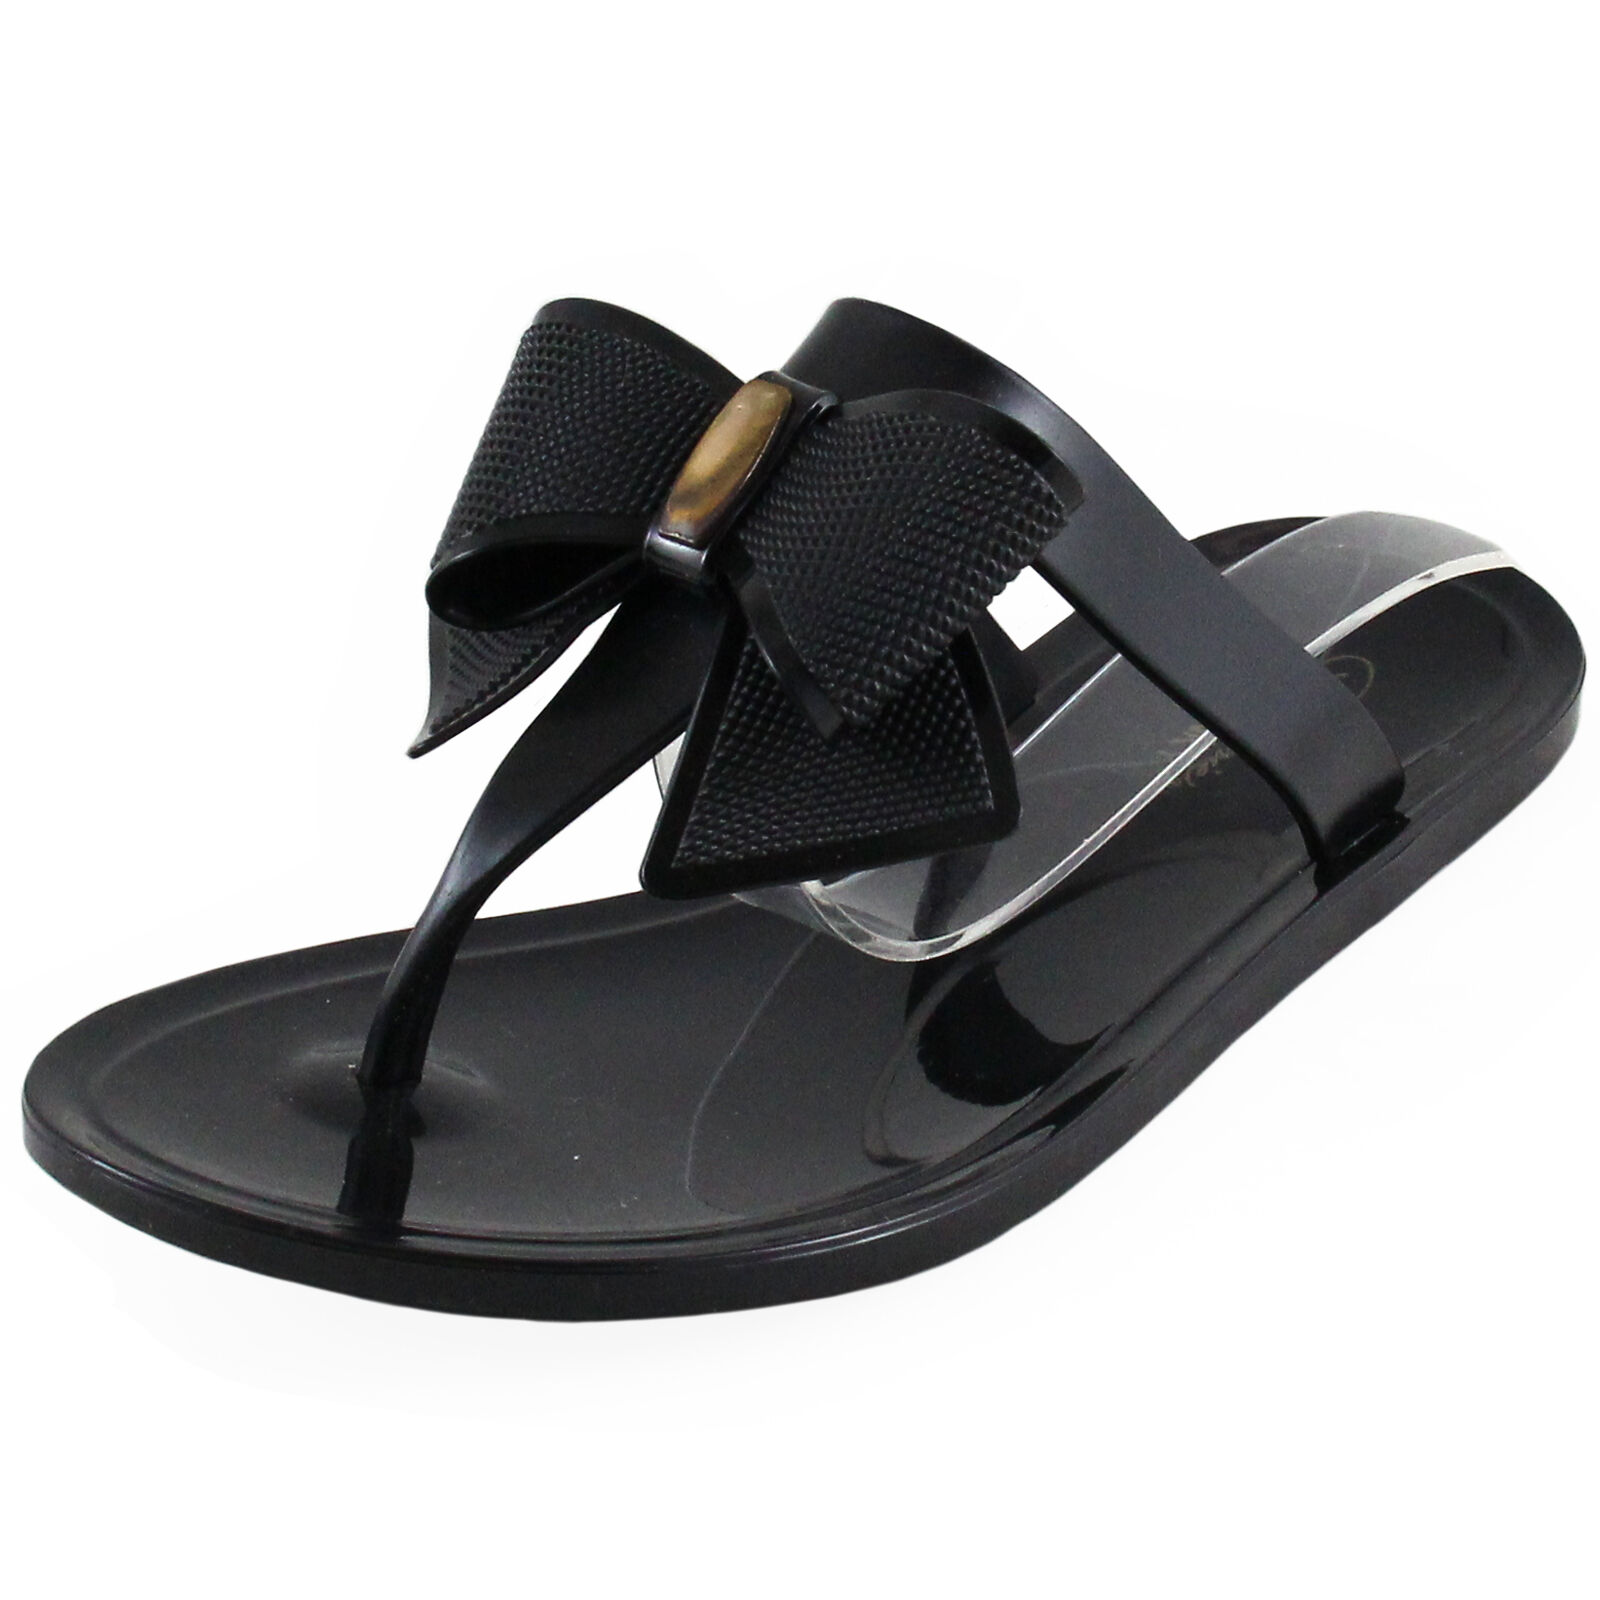 New women's shoes fashion jelly sandals black t strap casual summer black sandals solid bow a129cf